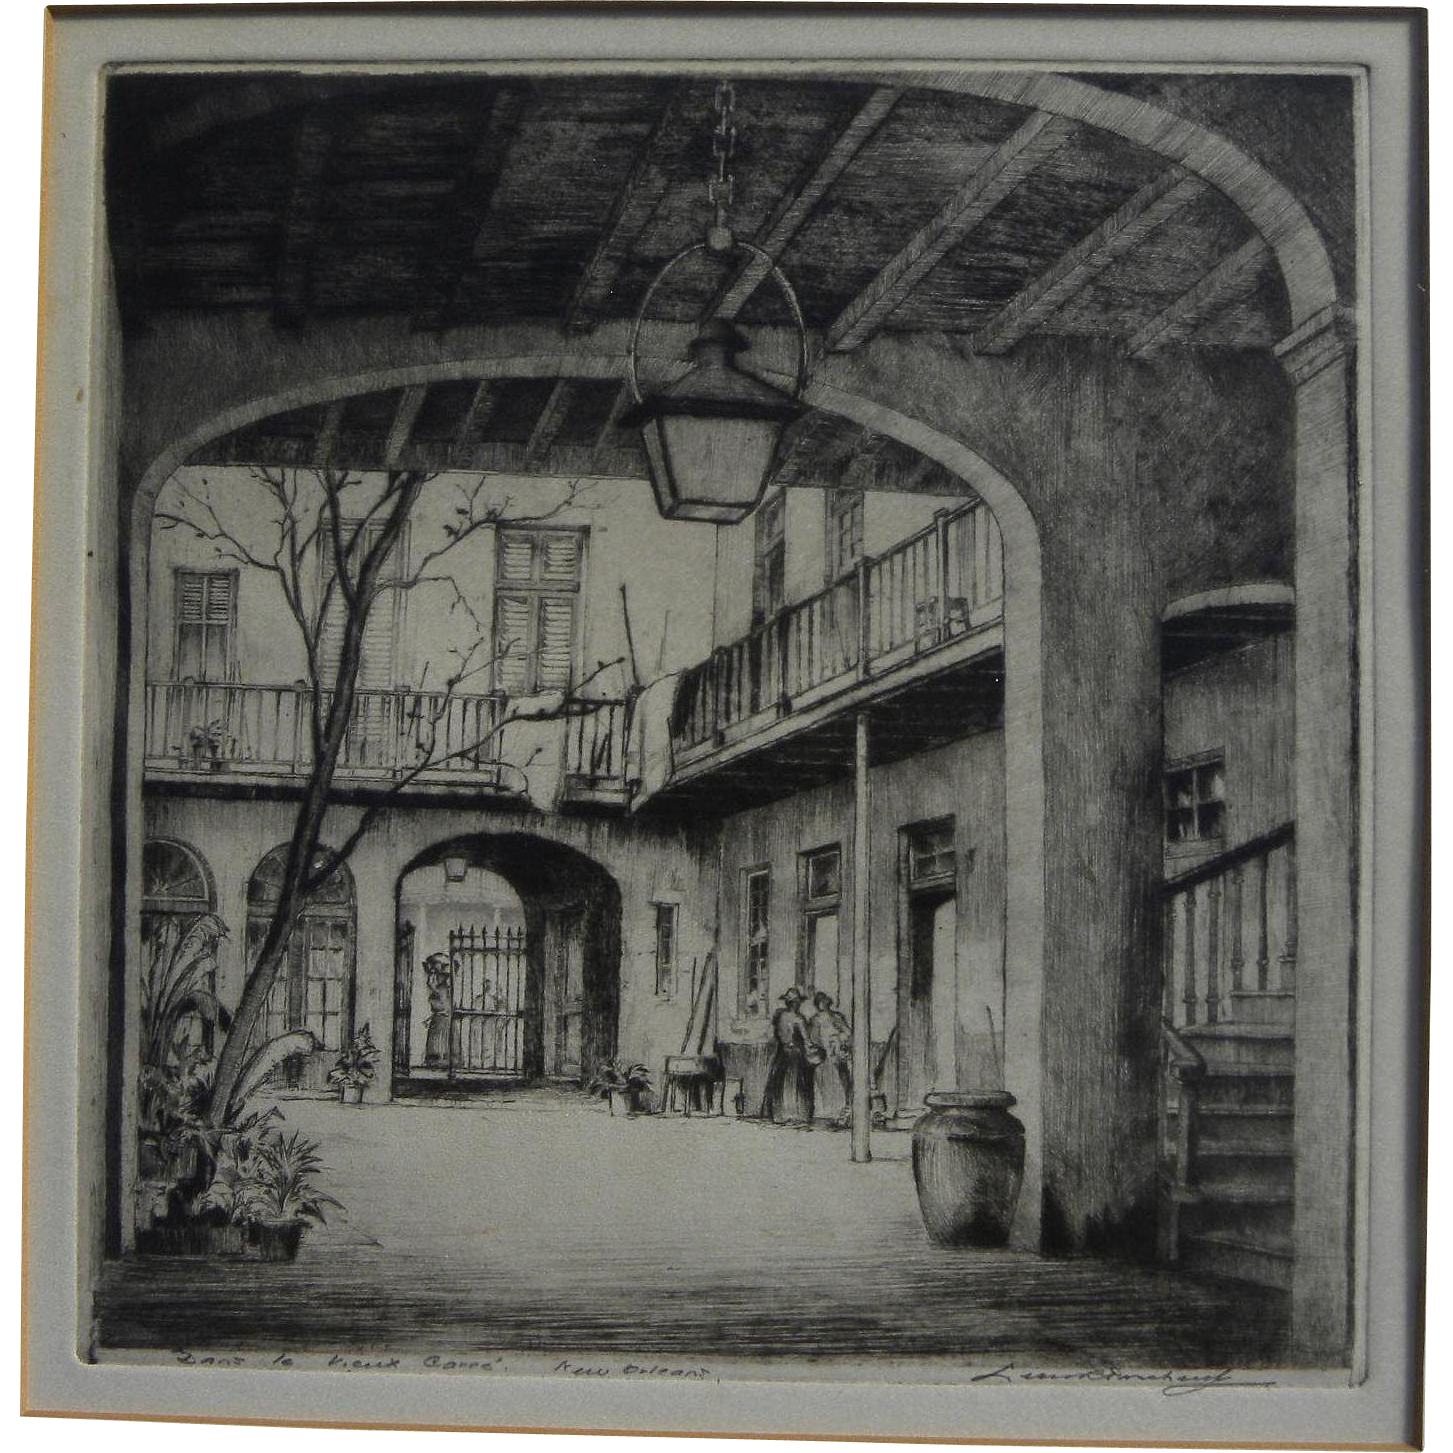 LEON PESCHERET (1892-1971) etching of New Orleans French Quarter courtyard pencil signed